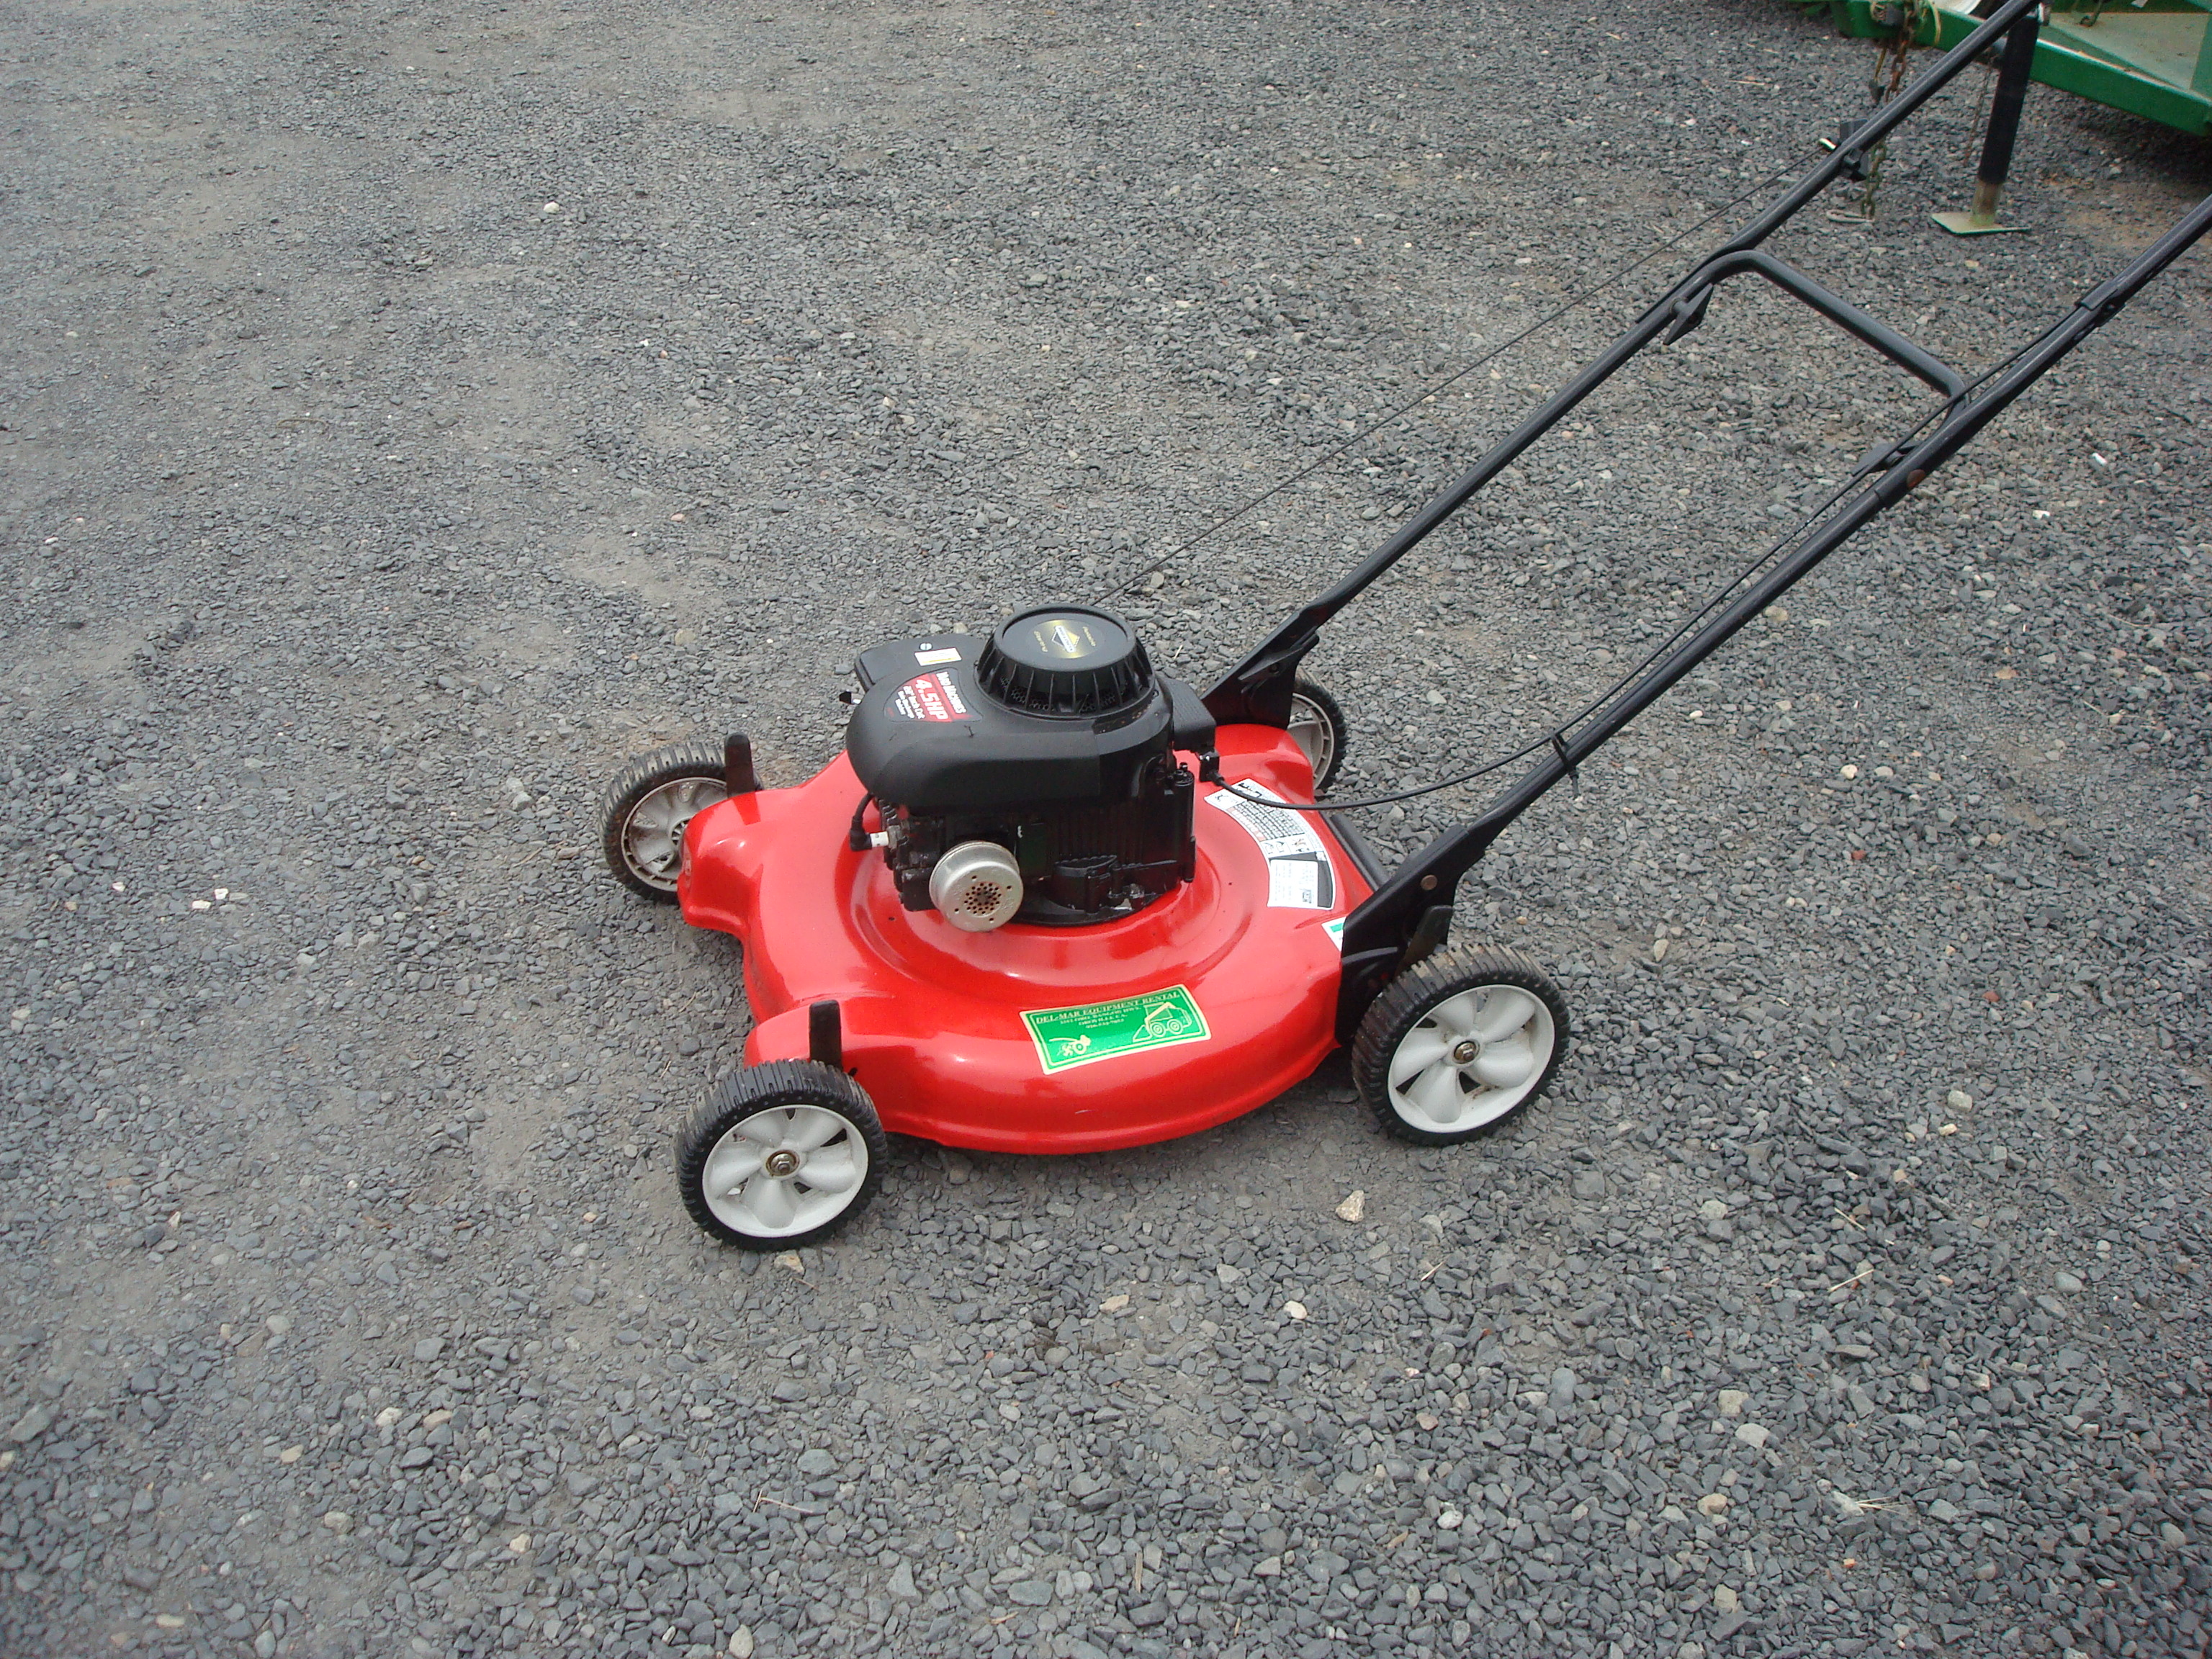 Small lawn mowers 28 images lawn king sg60rde ride on lawnmower review the best small ride - Lawn mower for small spaces decor ...